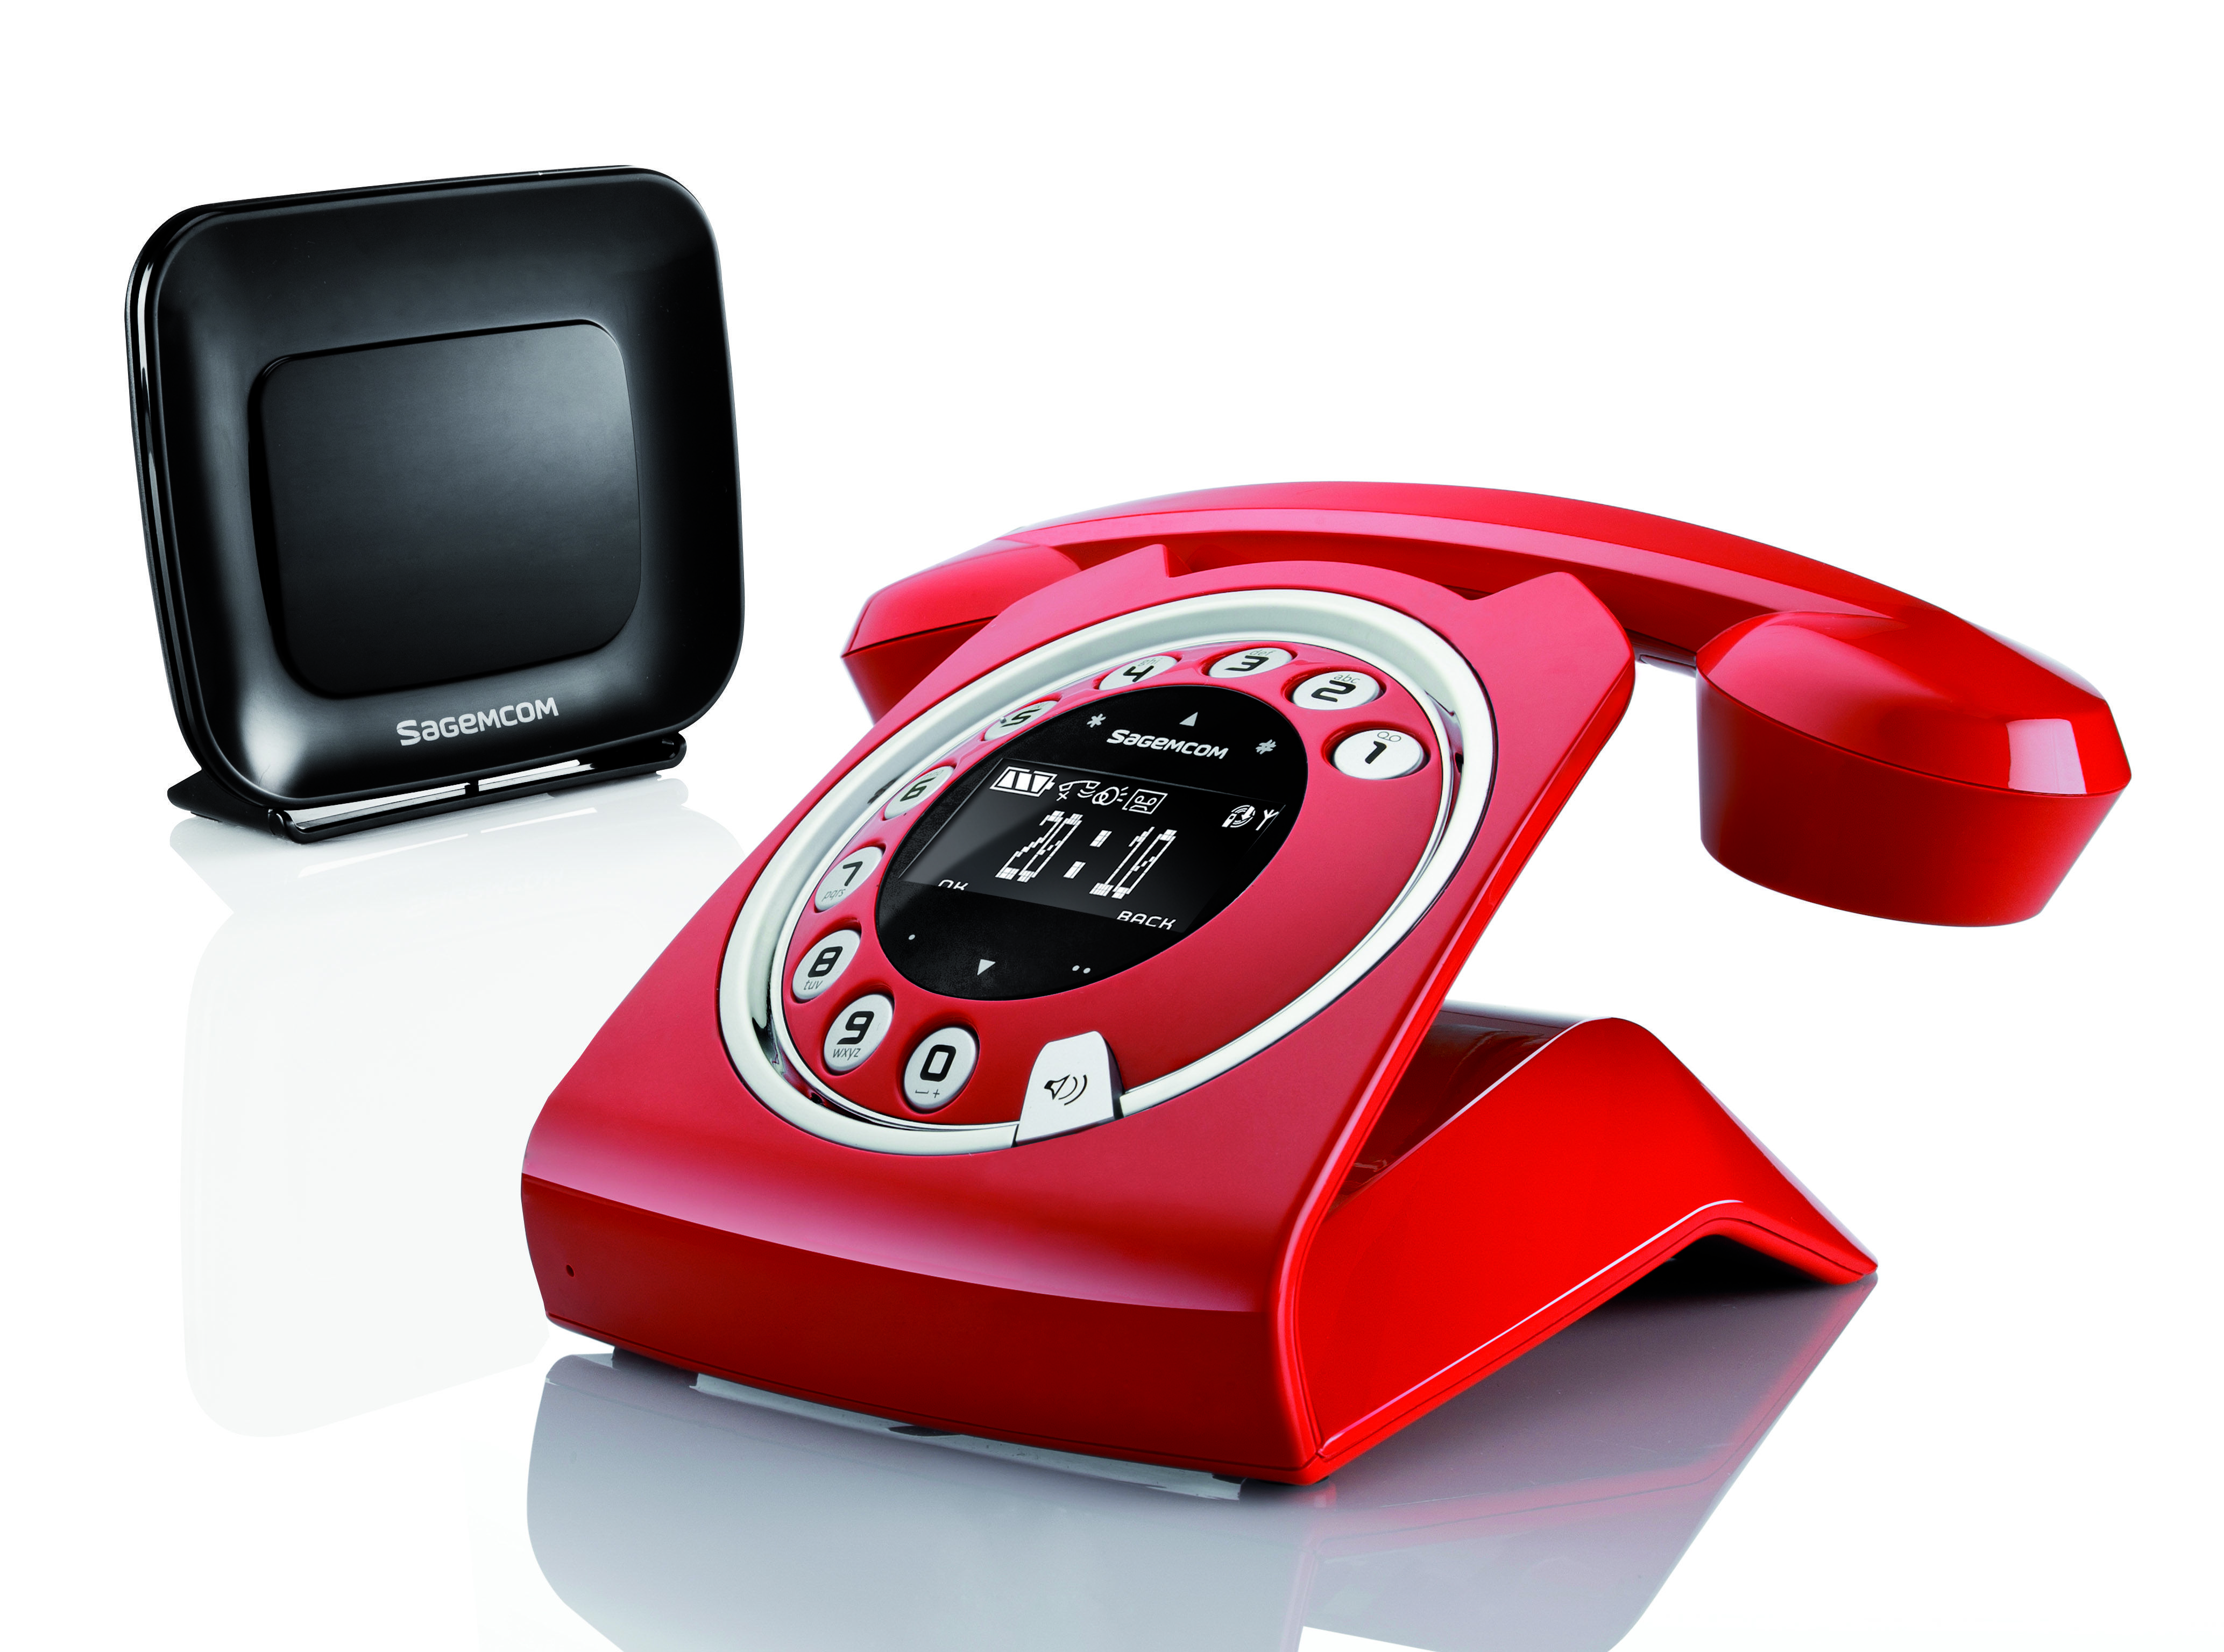 Cordless Phone Sagemcom Sixty Everywhere With Rl 313 Red Color 34